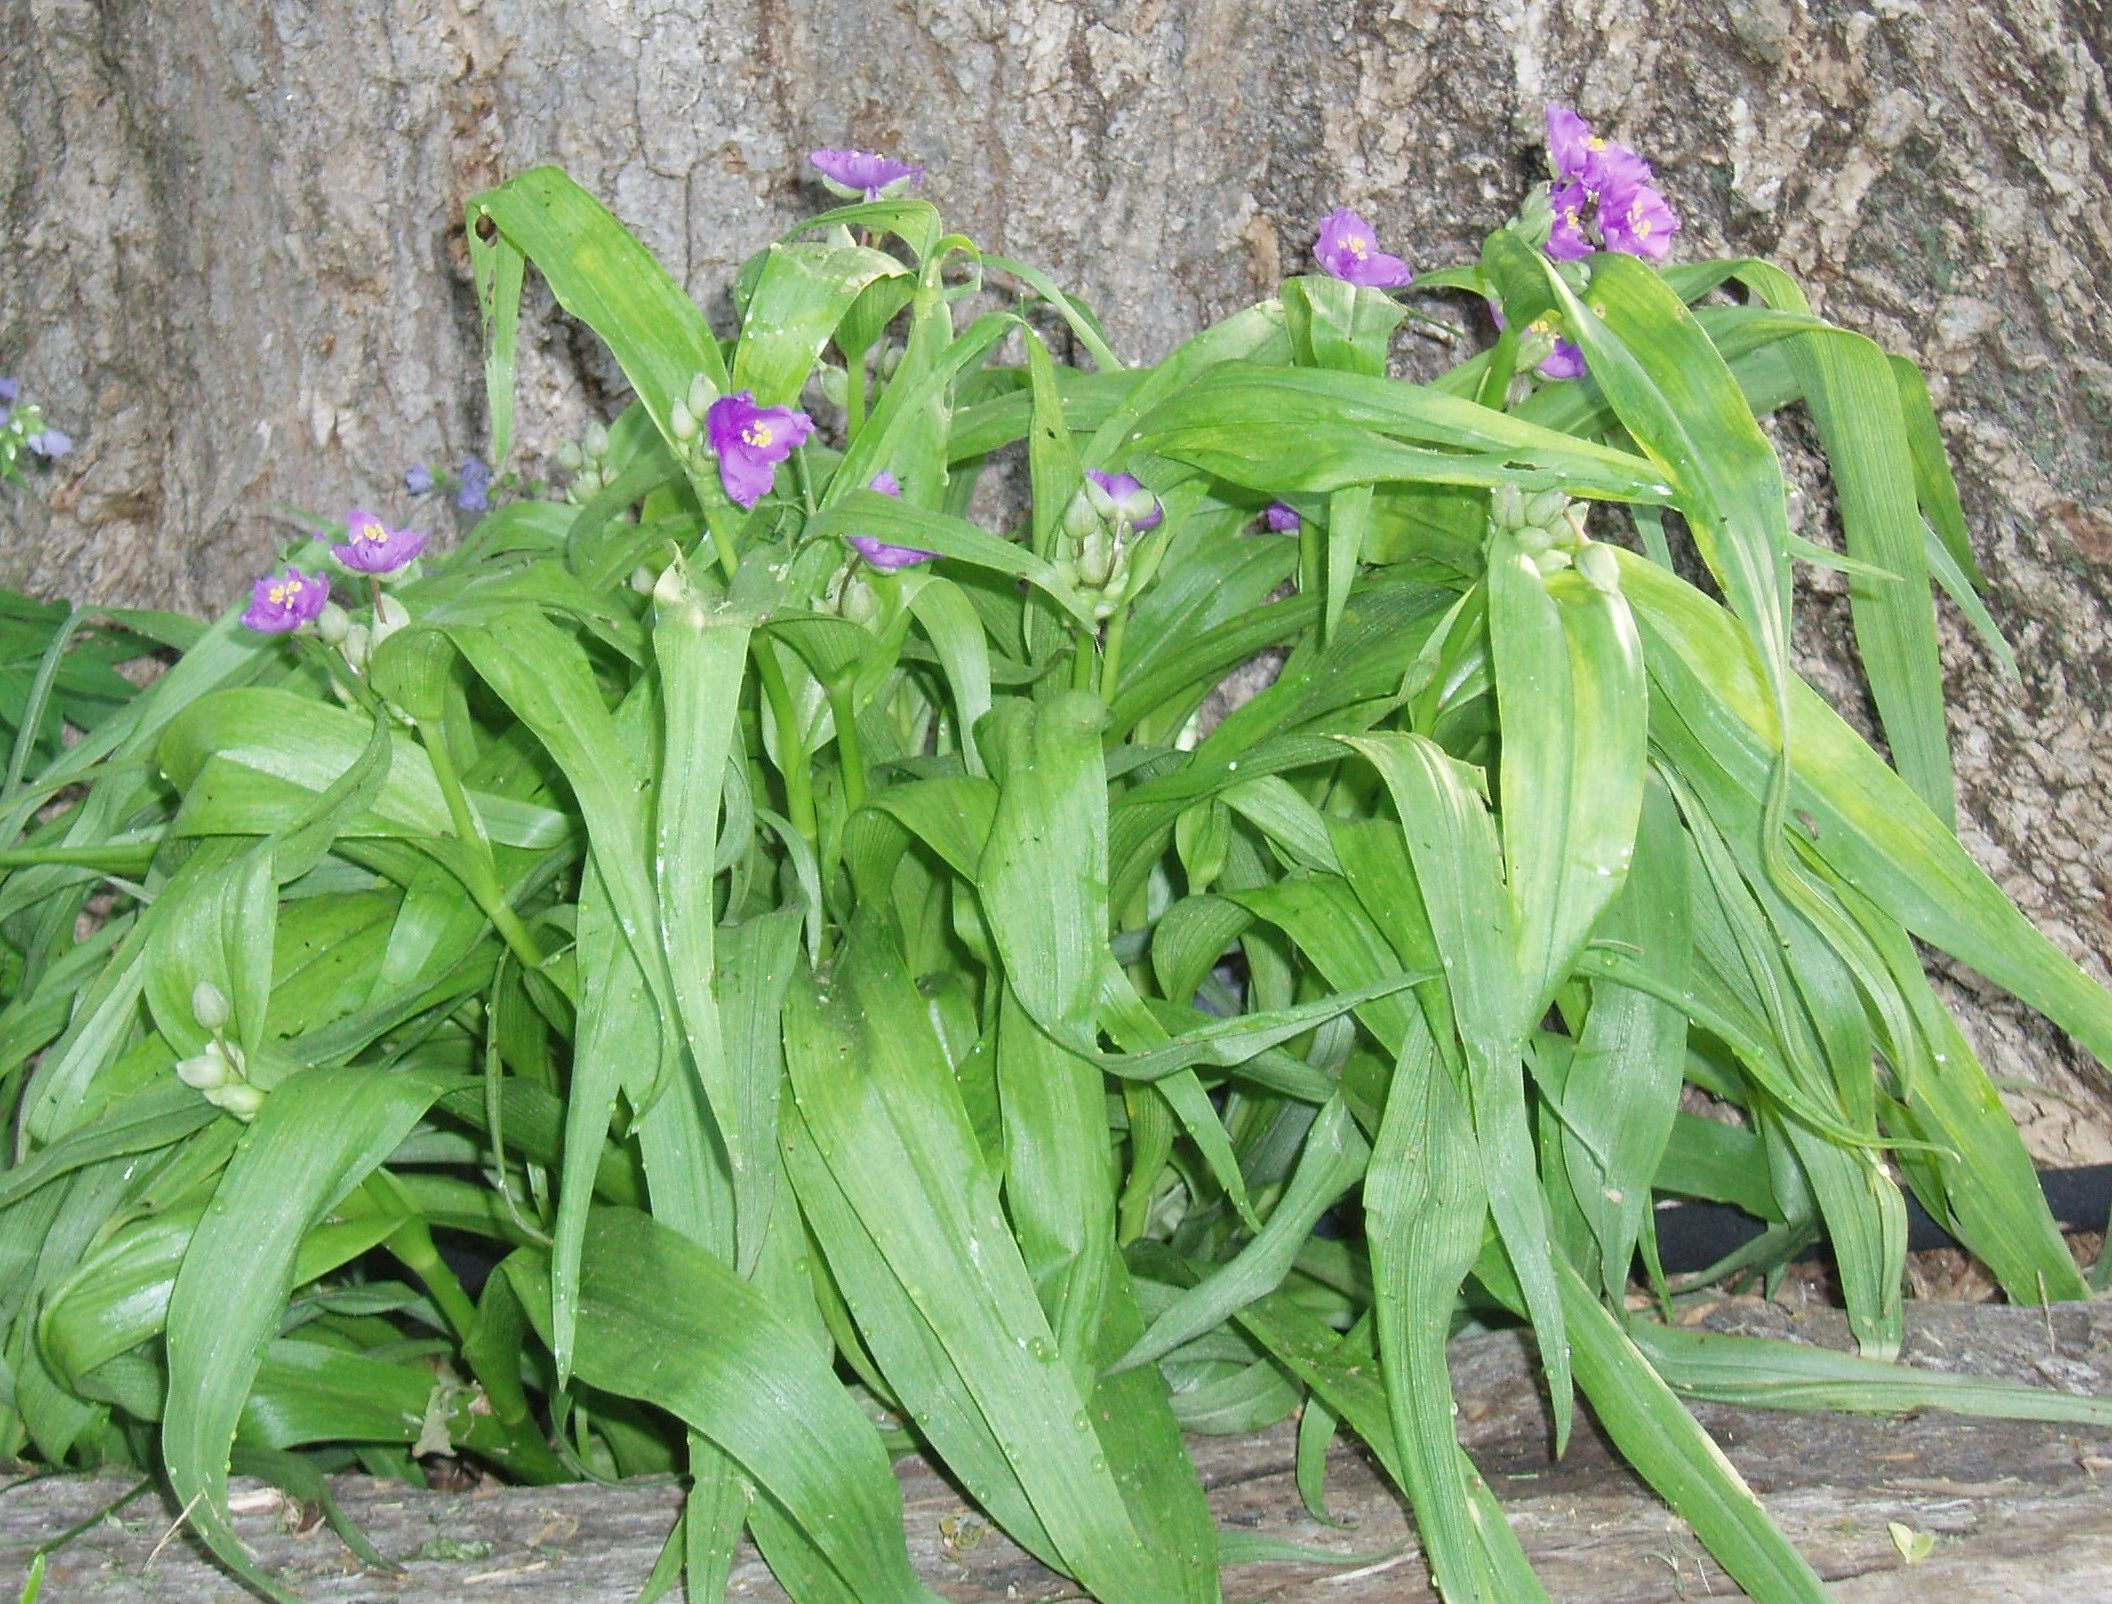 "{""blocks"":[{""key"":""c7buk"",""text"":"" Tradescantia ernestina Ernest's Woodland Spiderwort - potted plants email john@easywildflowers.com"",""type"":""unstyled"",""depth"":0,""inlineStyleRanges"":[],""entityRanges"":[],""data"":{}}],""entityMap"":{}}"